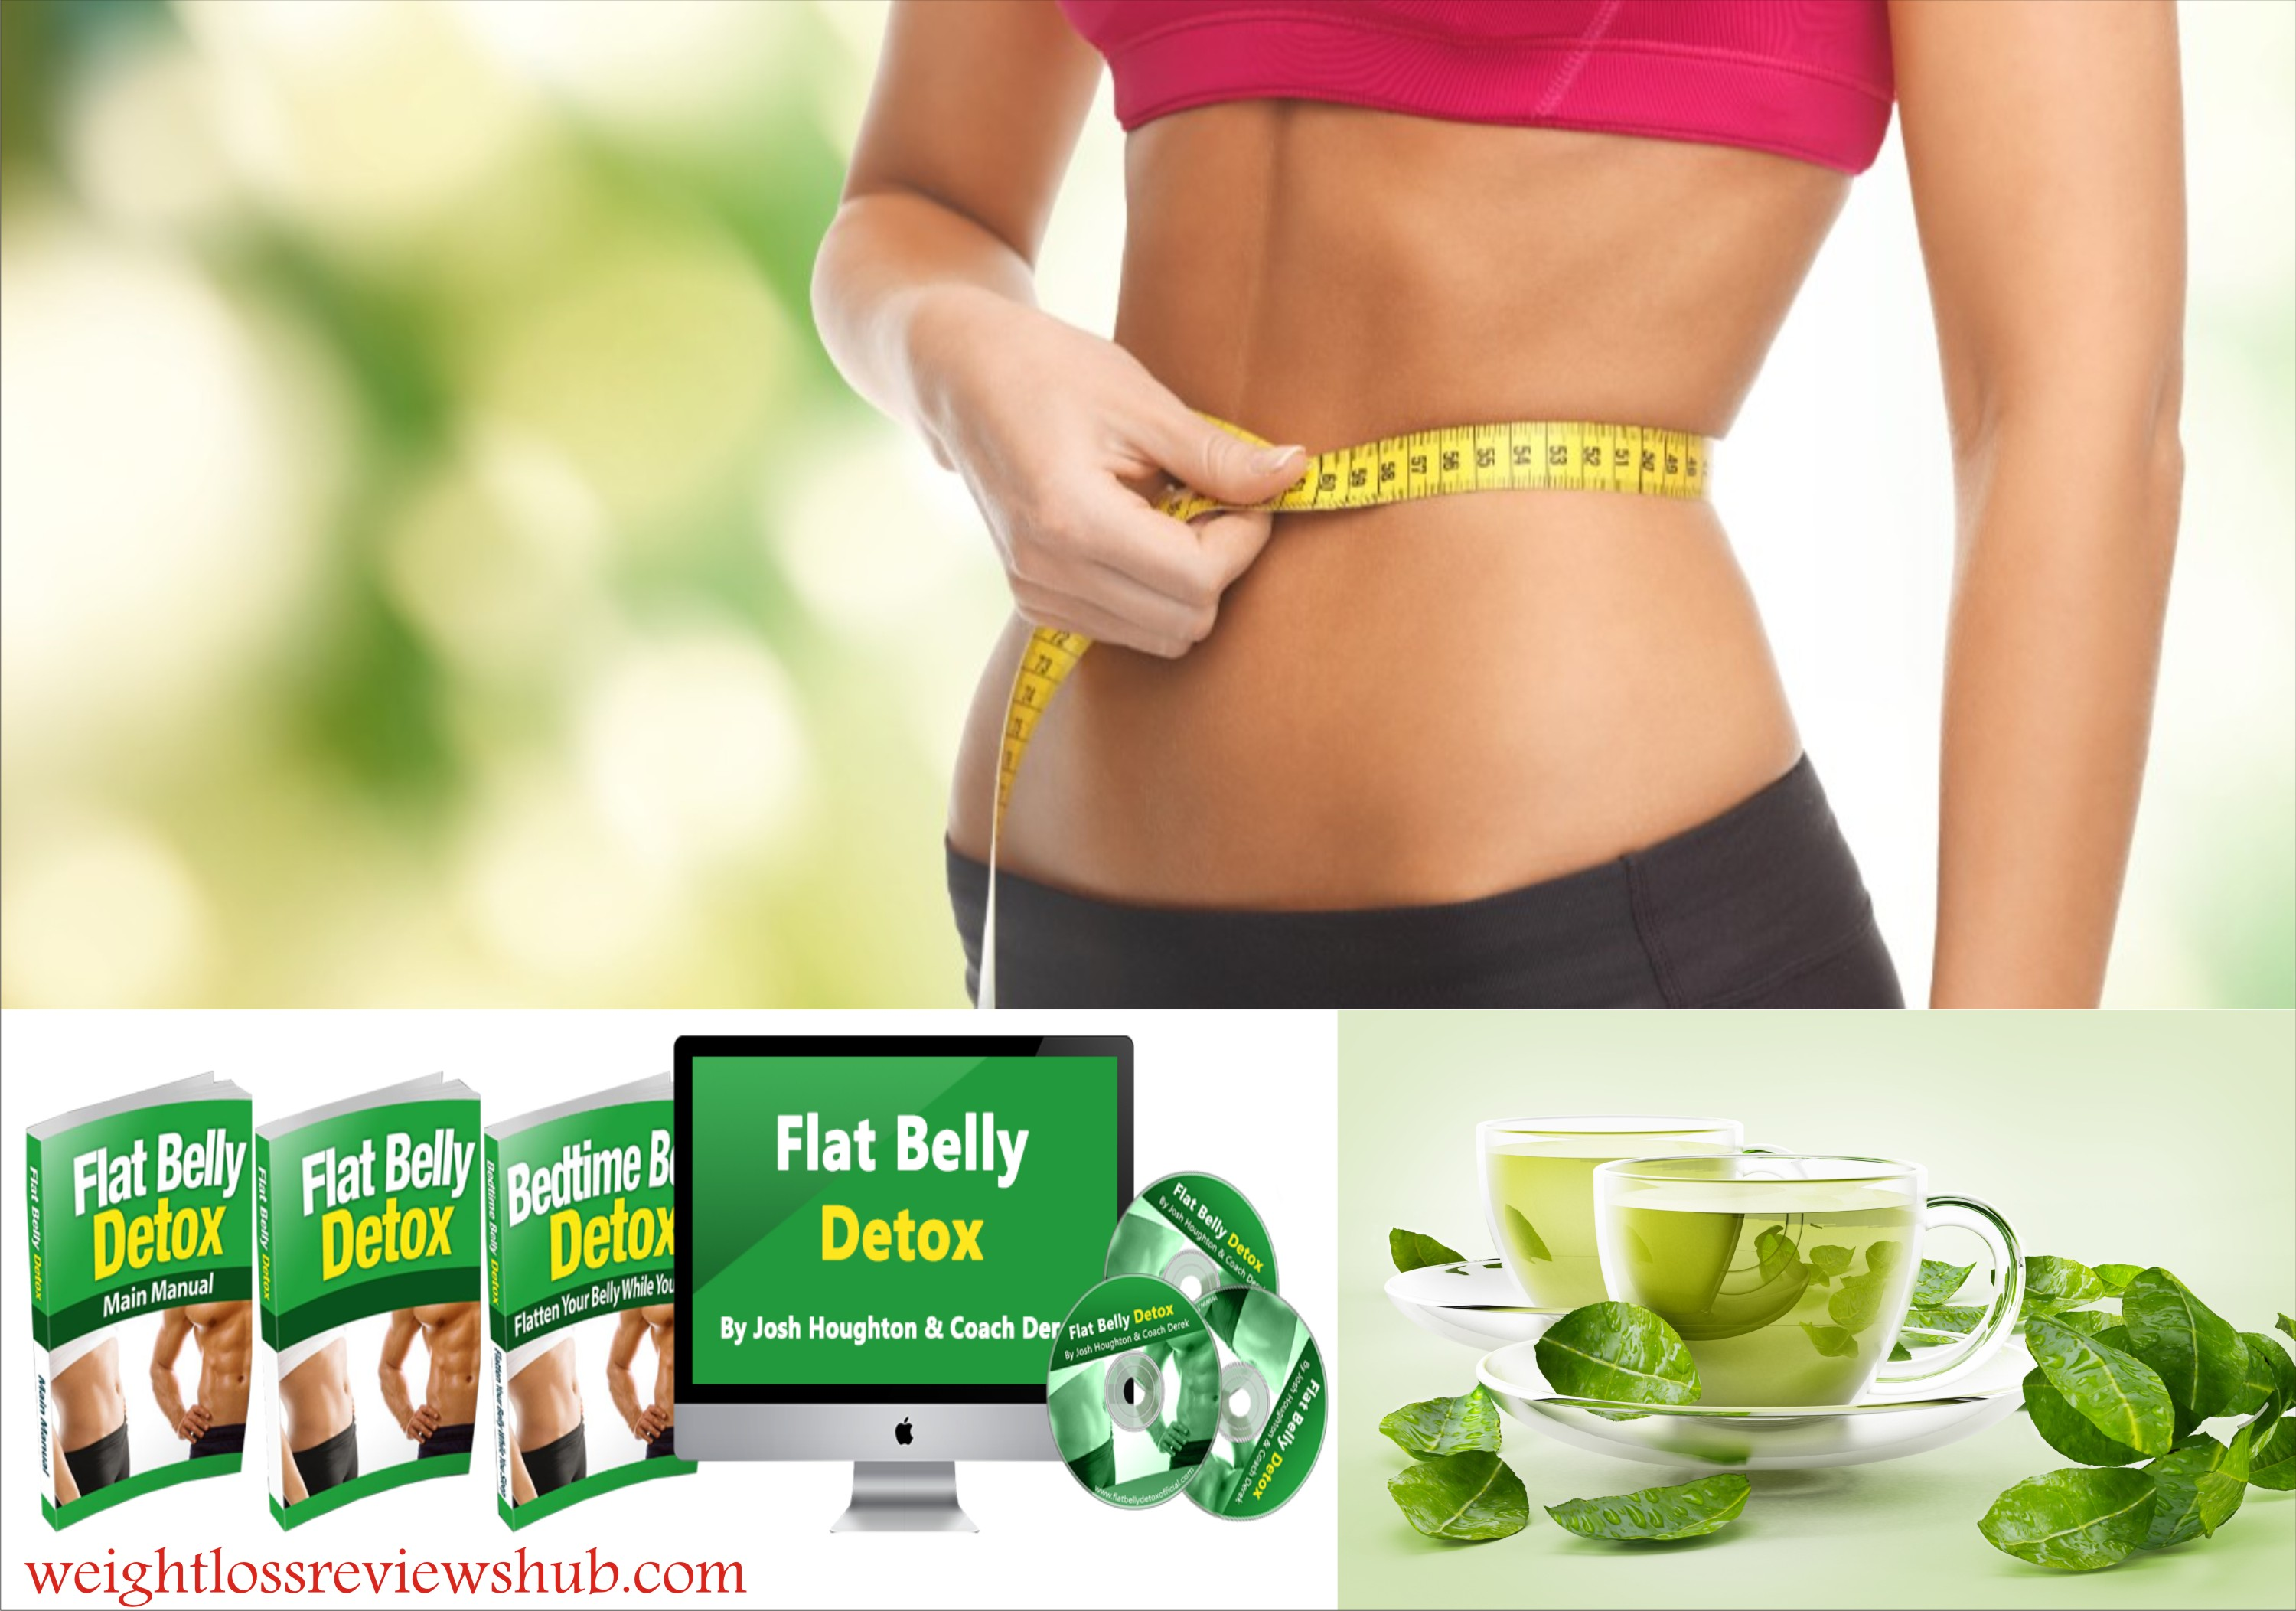 Find Inside Flat Belly Detox